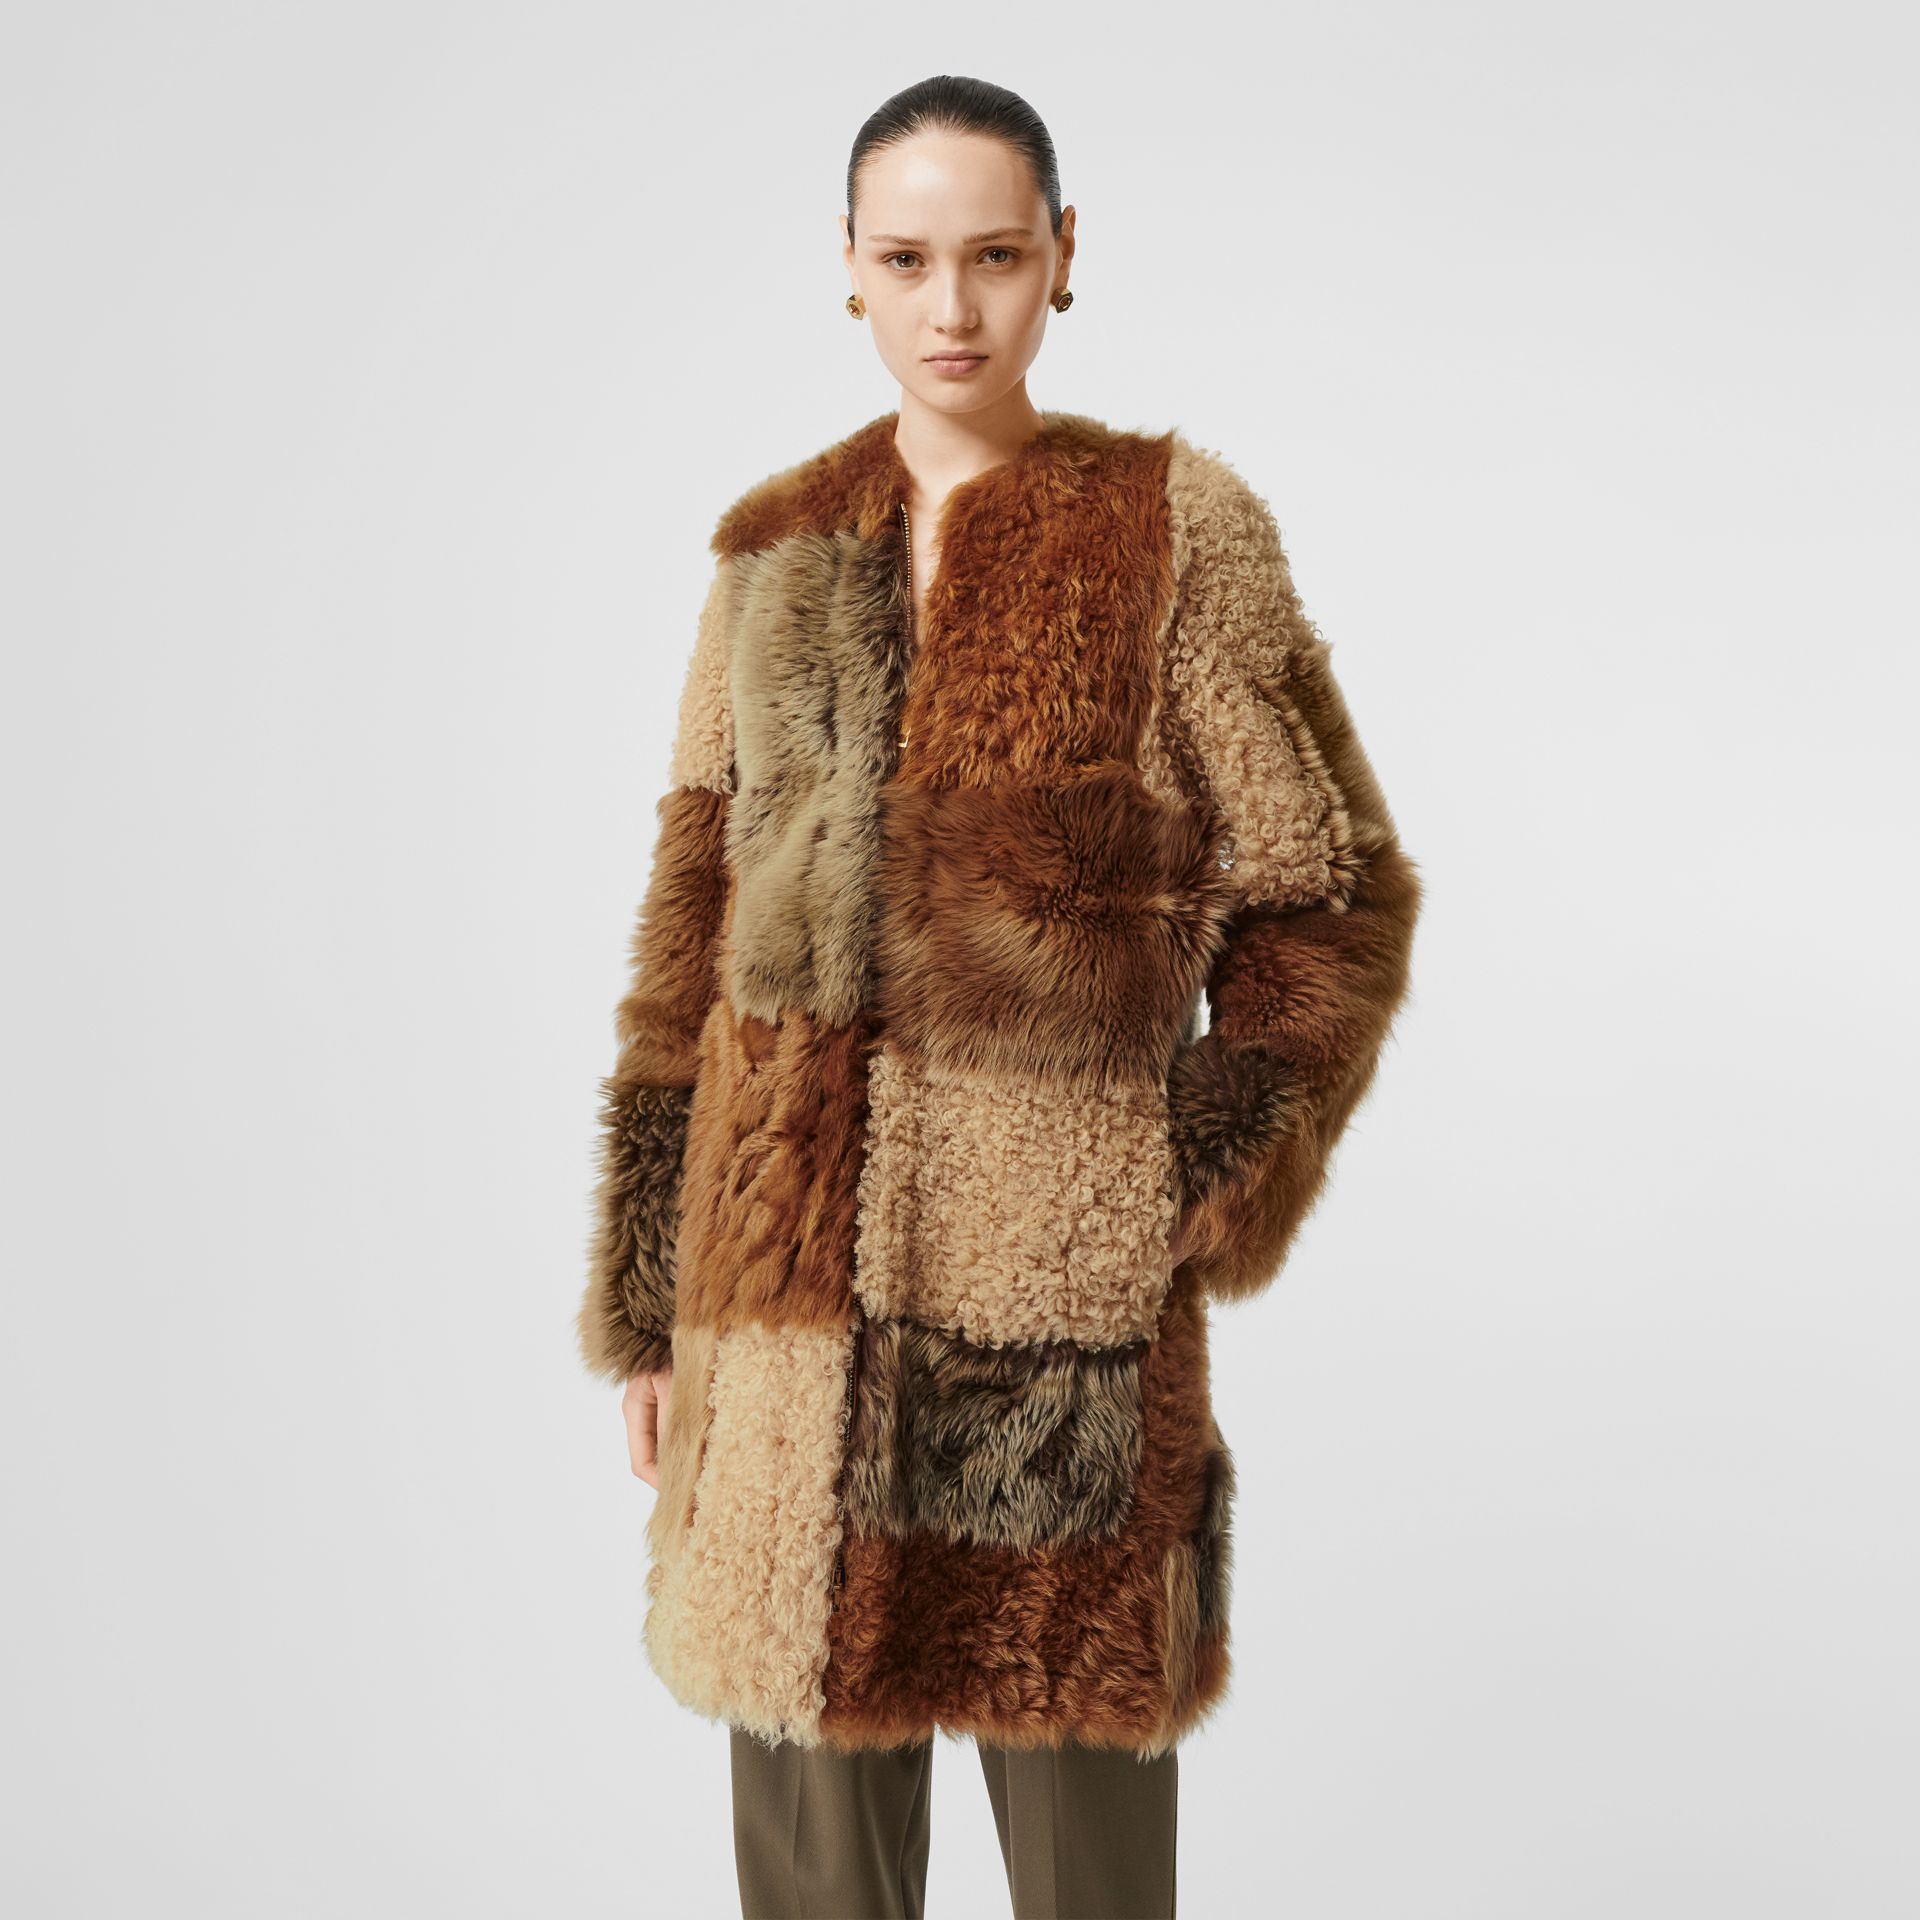 Patchwork Shearling Coat in Toffee - Women | Burberry Australia - gallery image 6